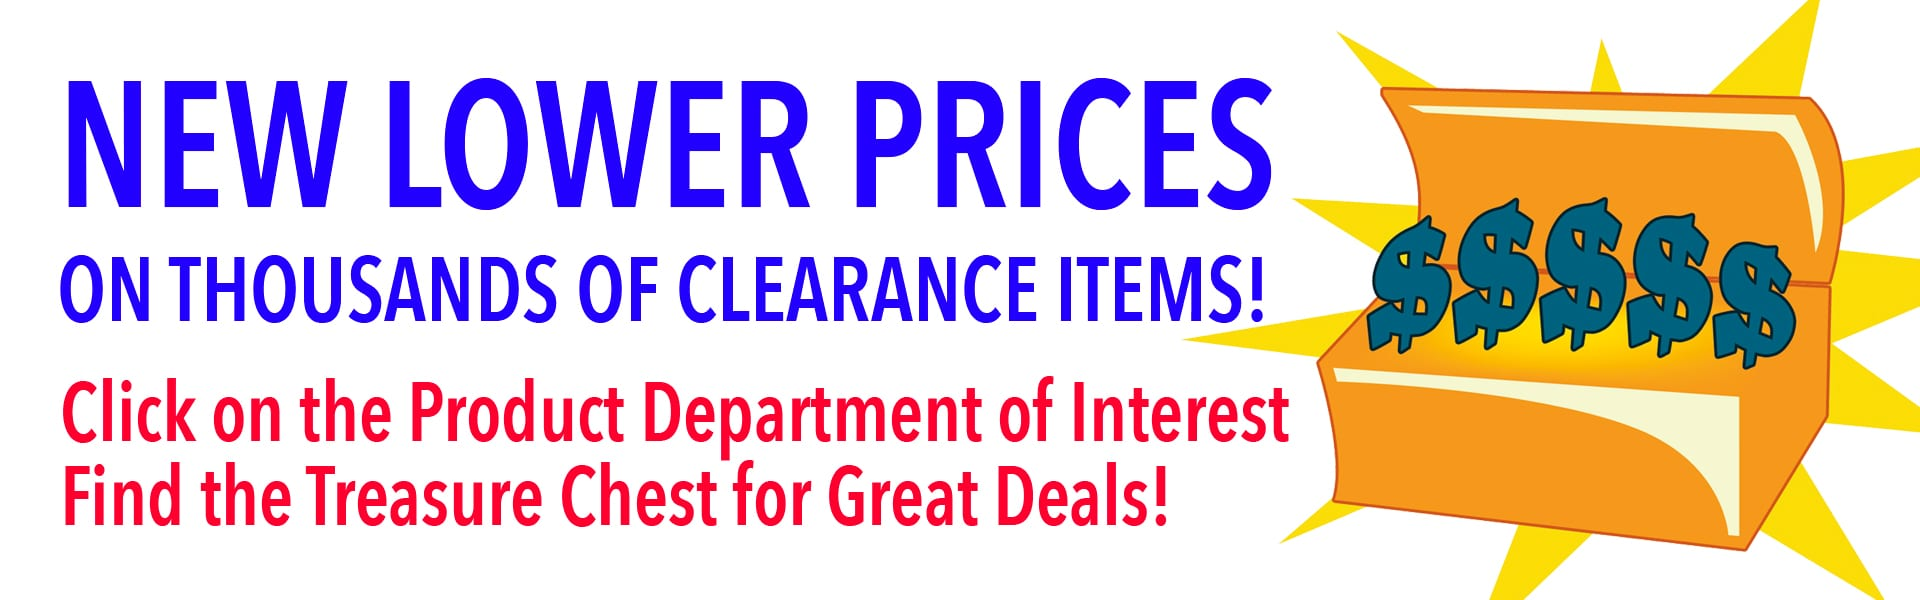 Clearance New Low Prices